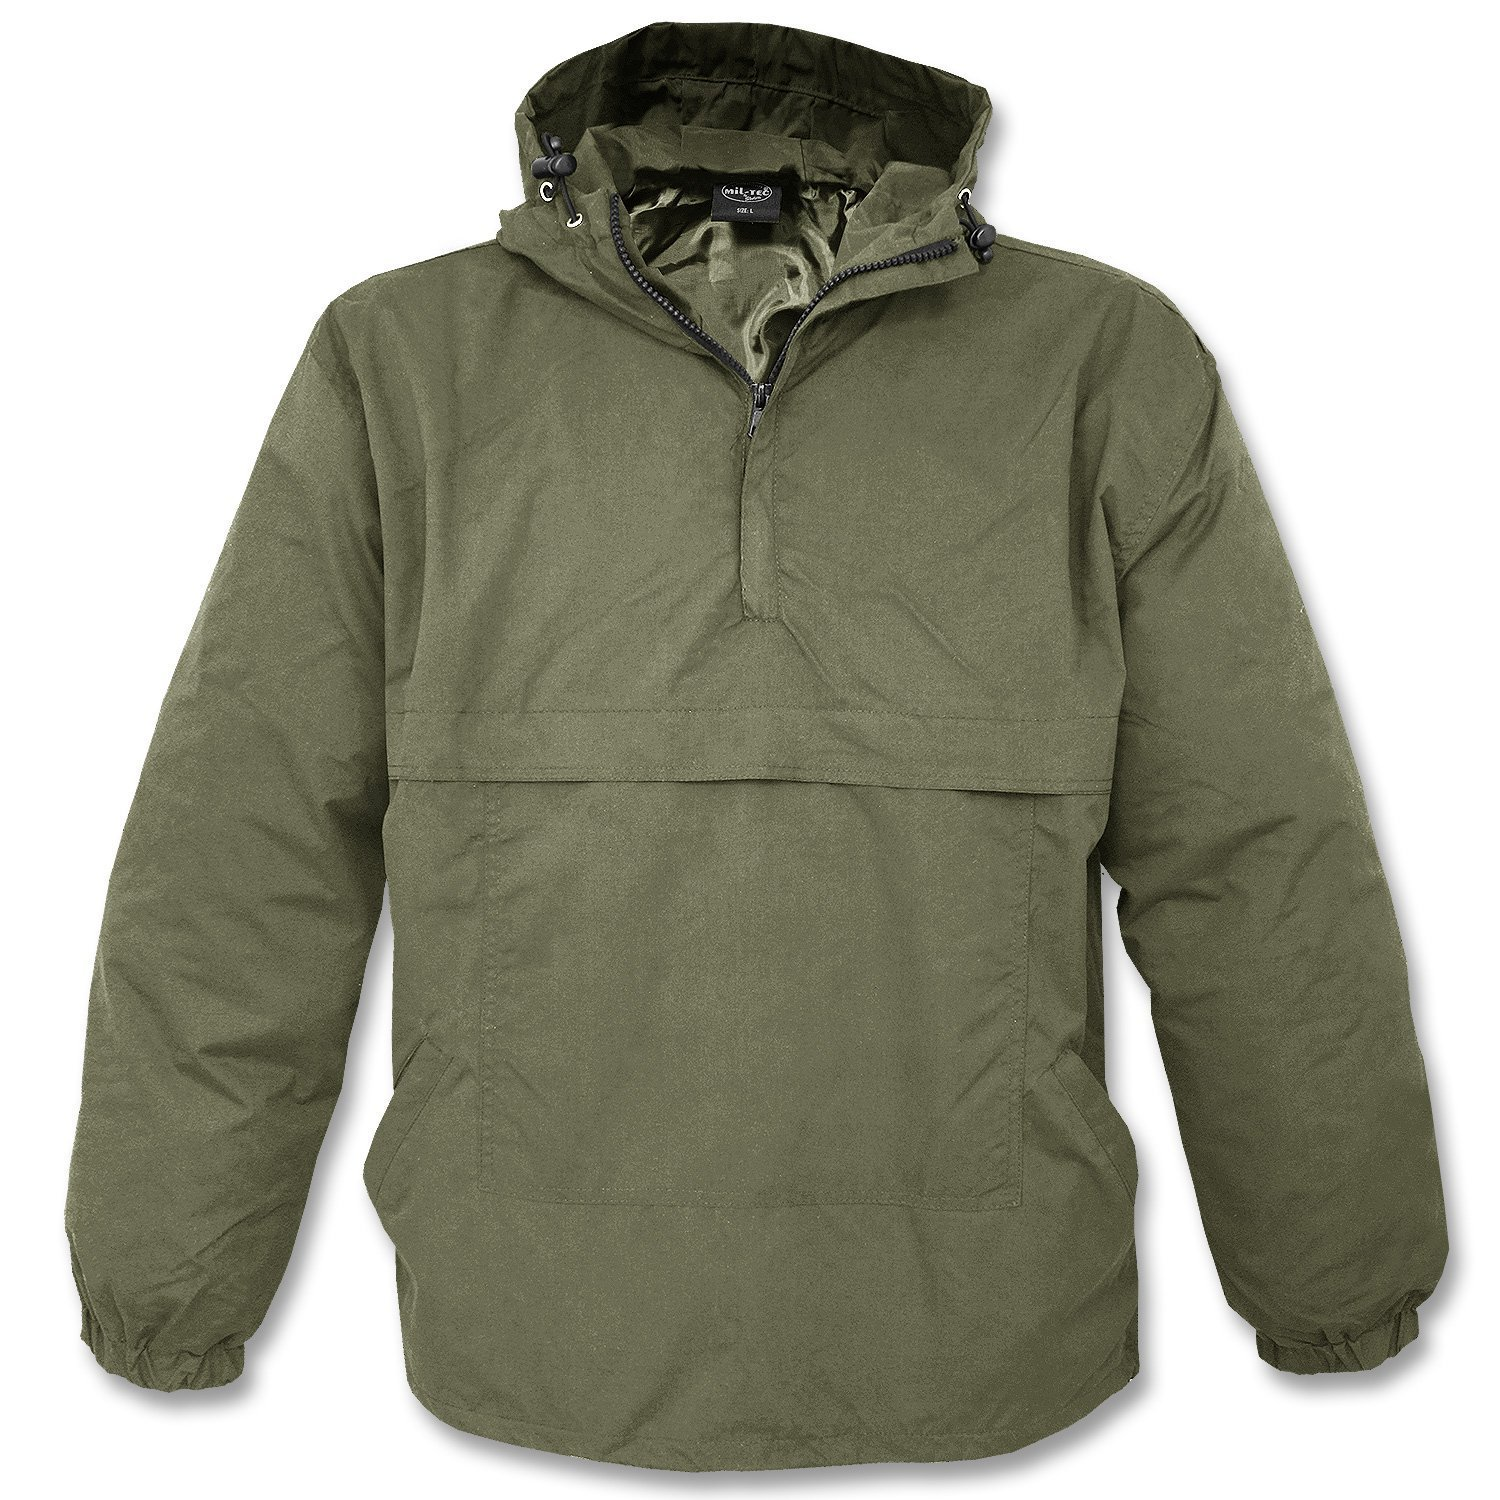 Mil-Tec Combat Summer Anorak Weather Jacket - Olive Drab, Small